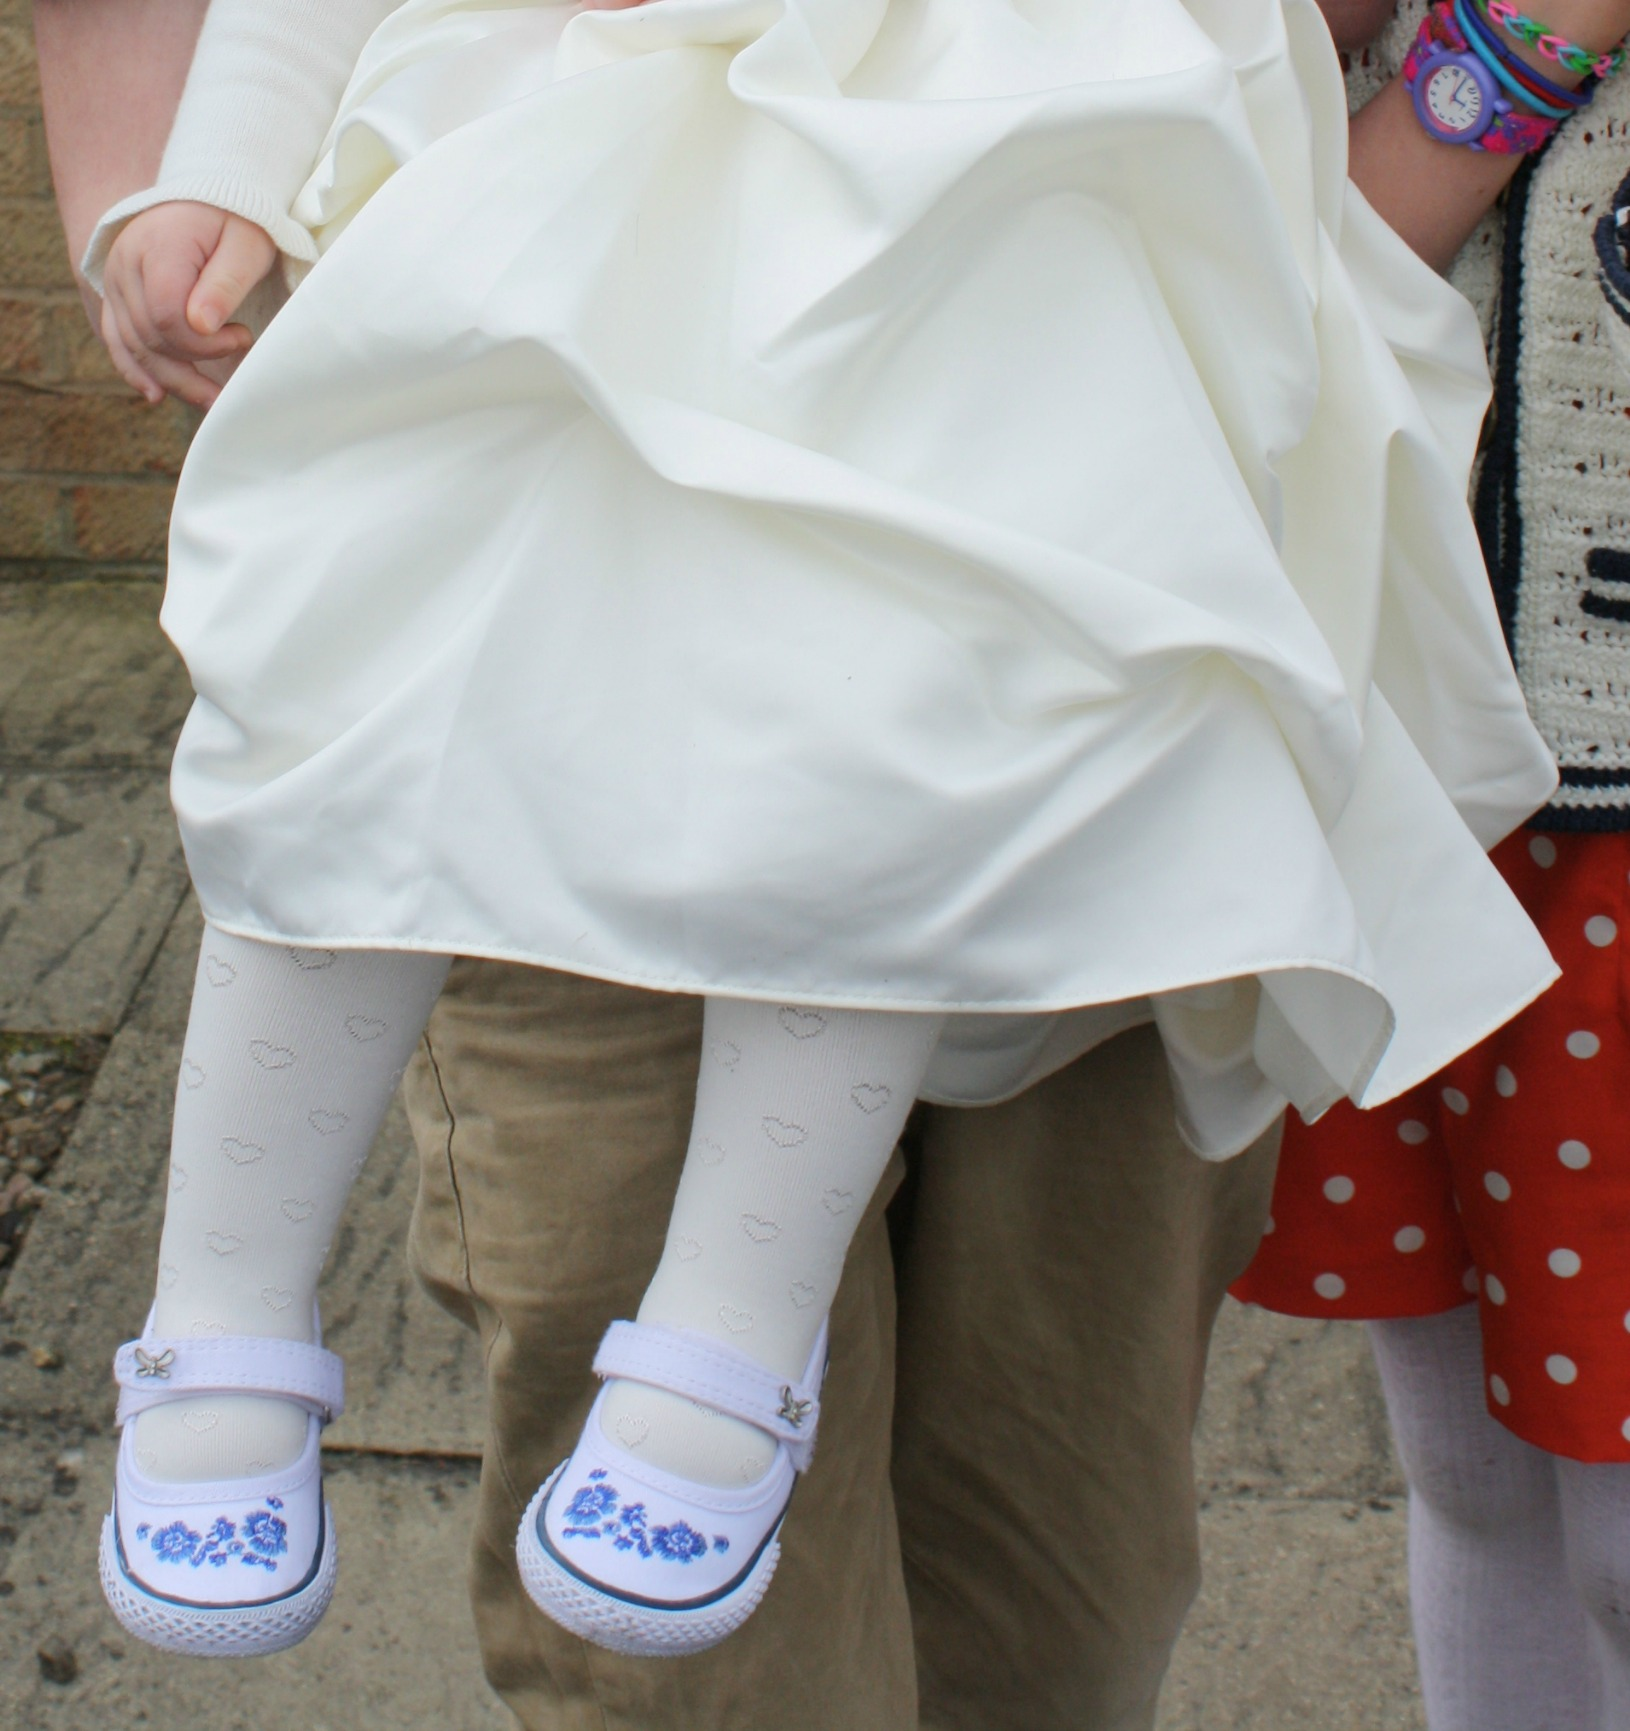 Wedding, niece, shoes, 365